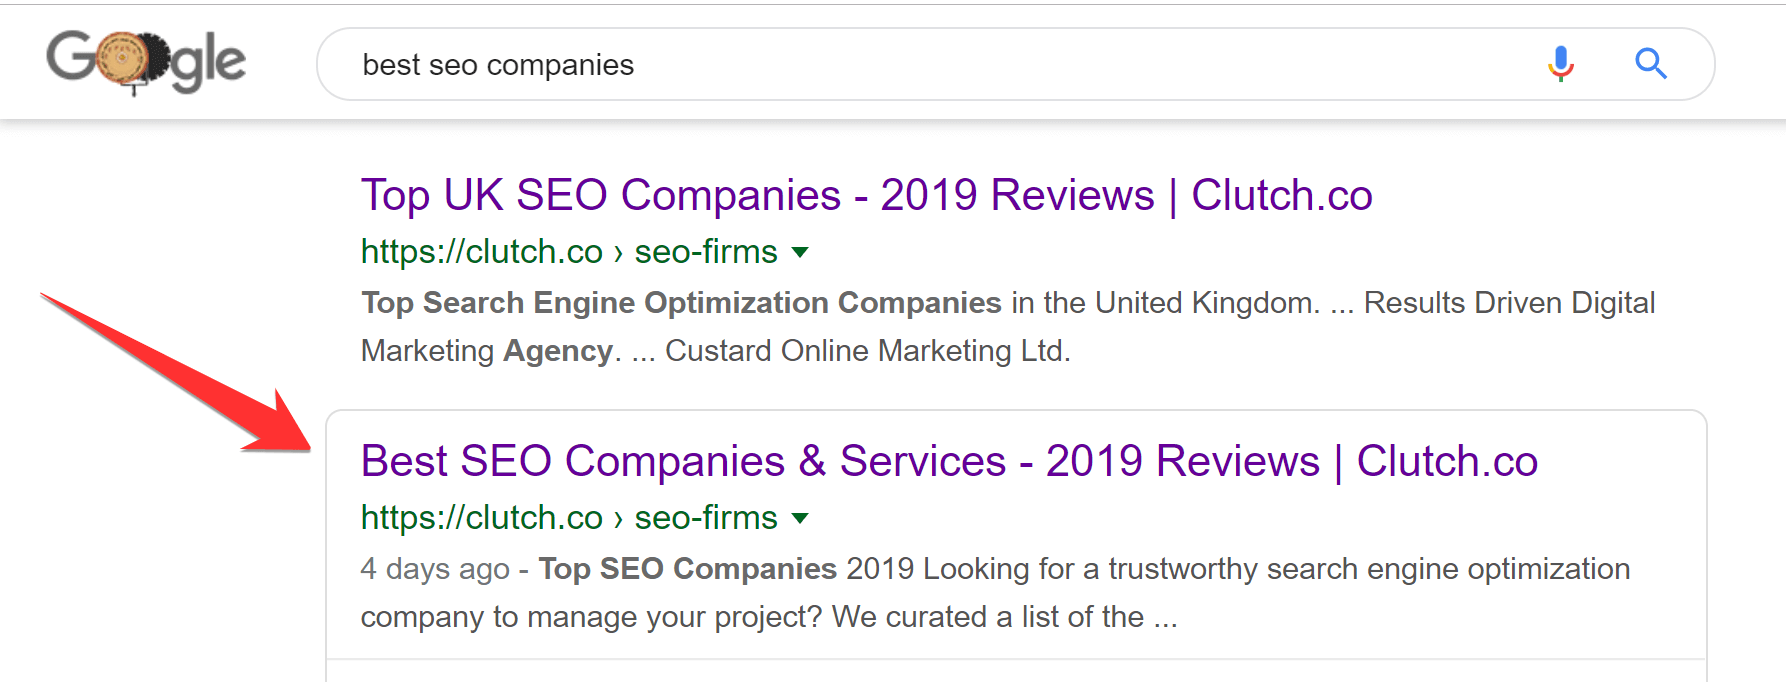 Clutch Best SEO Companies